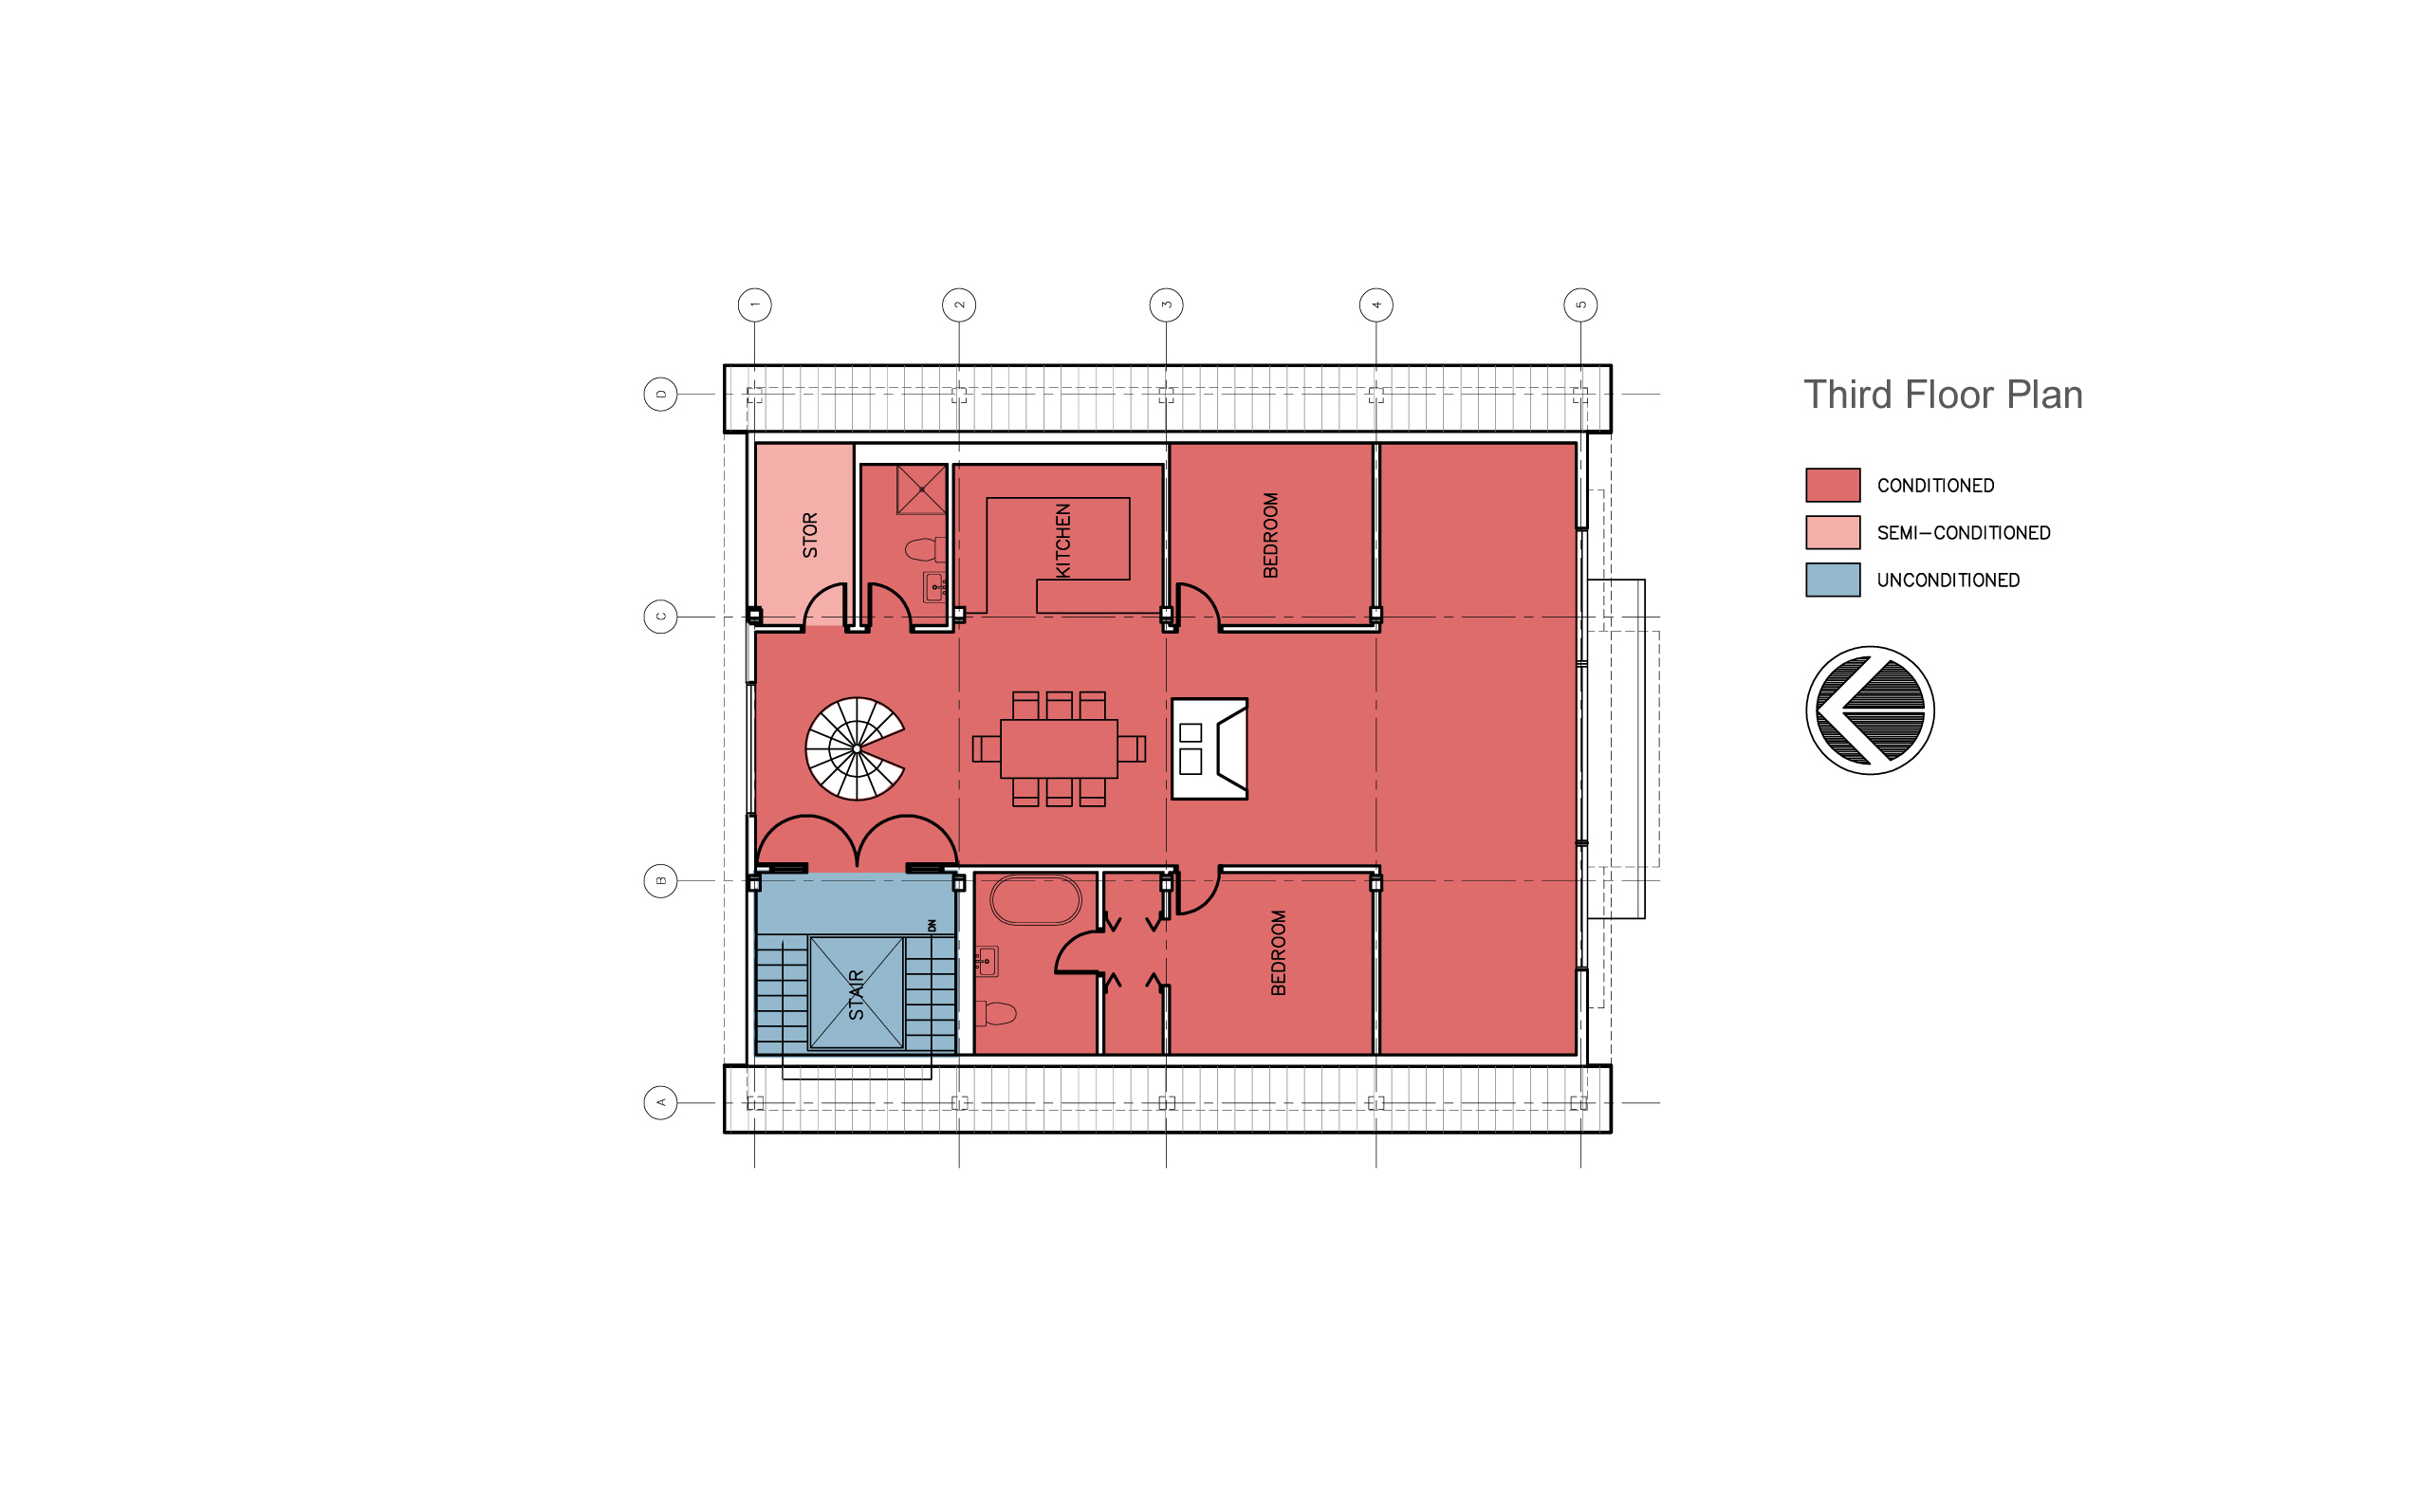 Modern barn renovation, third floor plan.